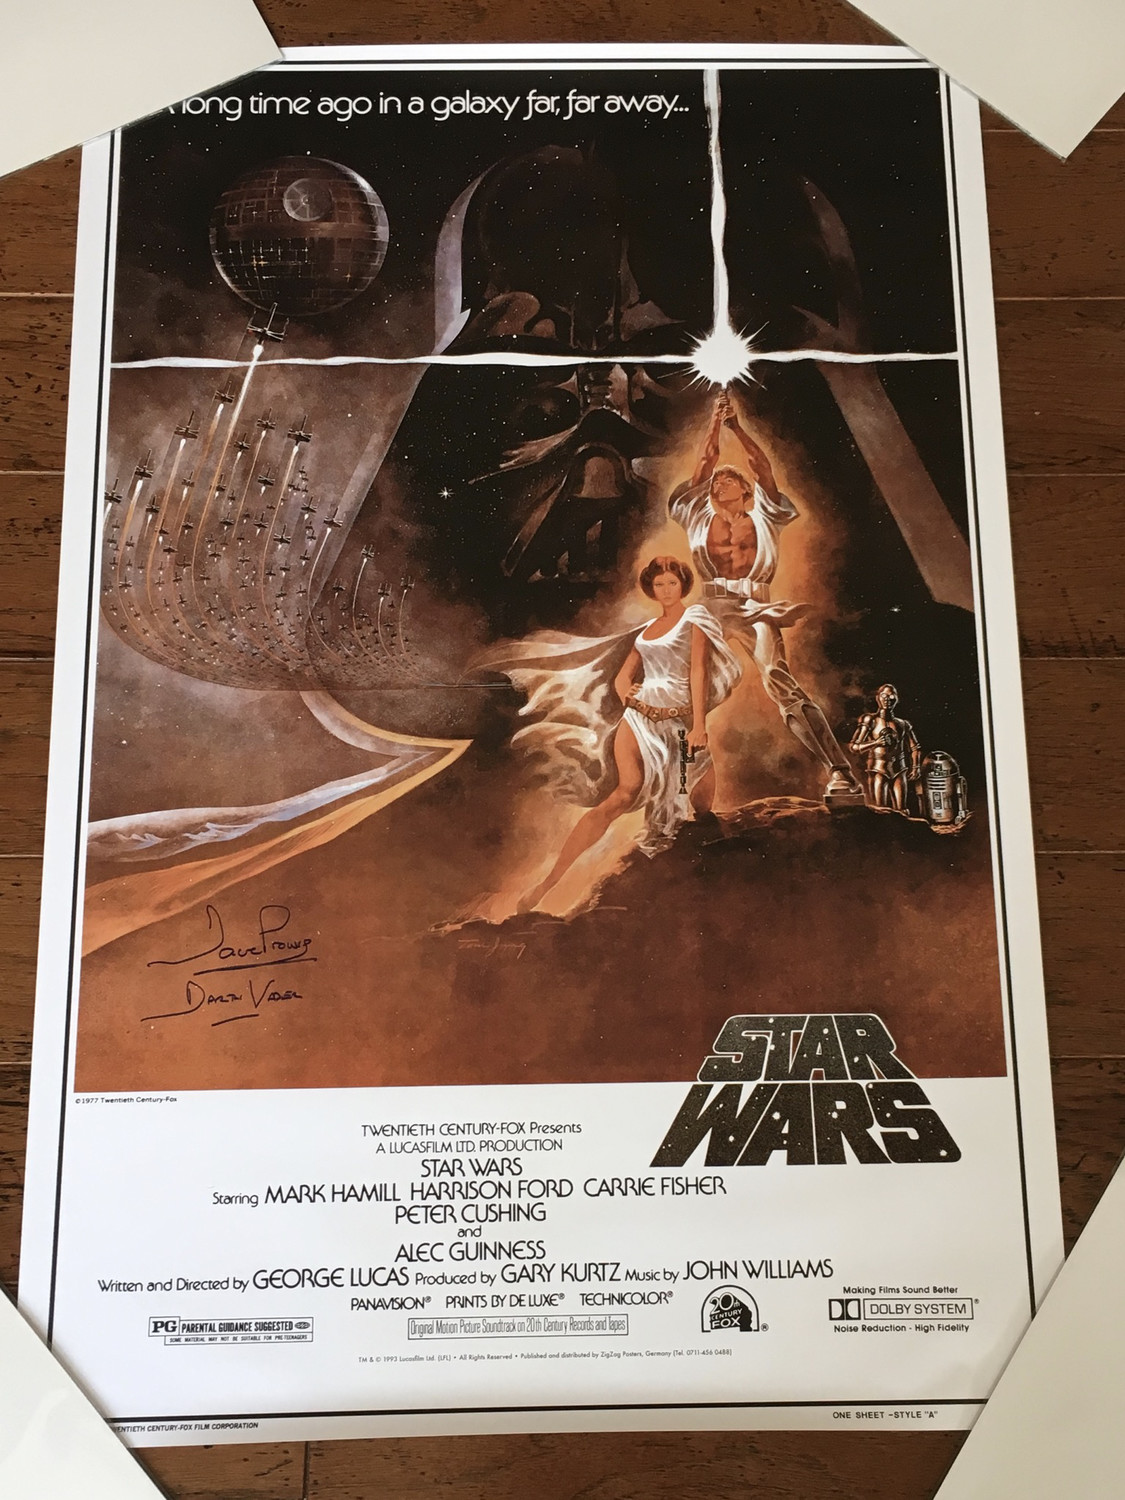 24x36 POSTER SIGNED BY DAVE PROWSE